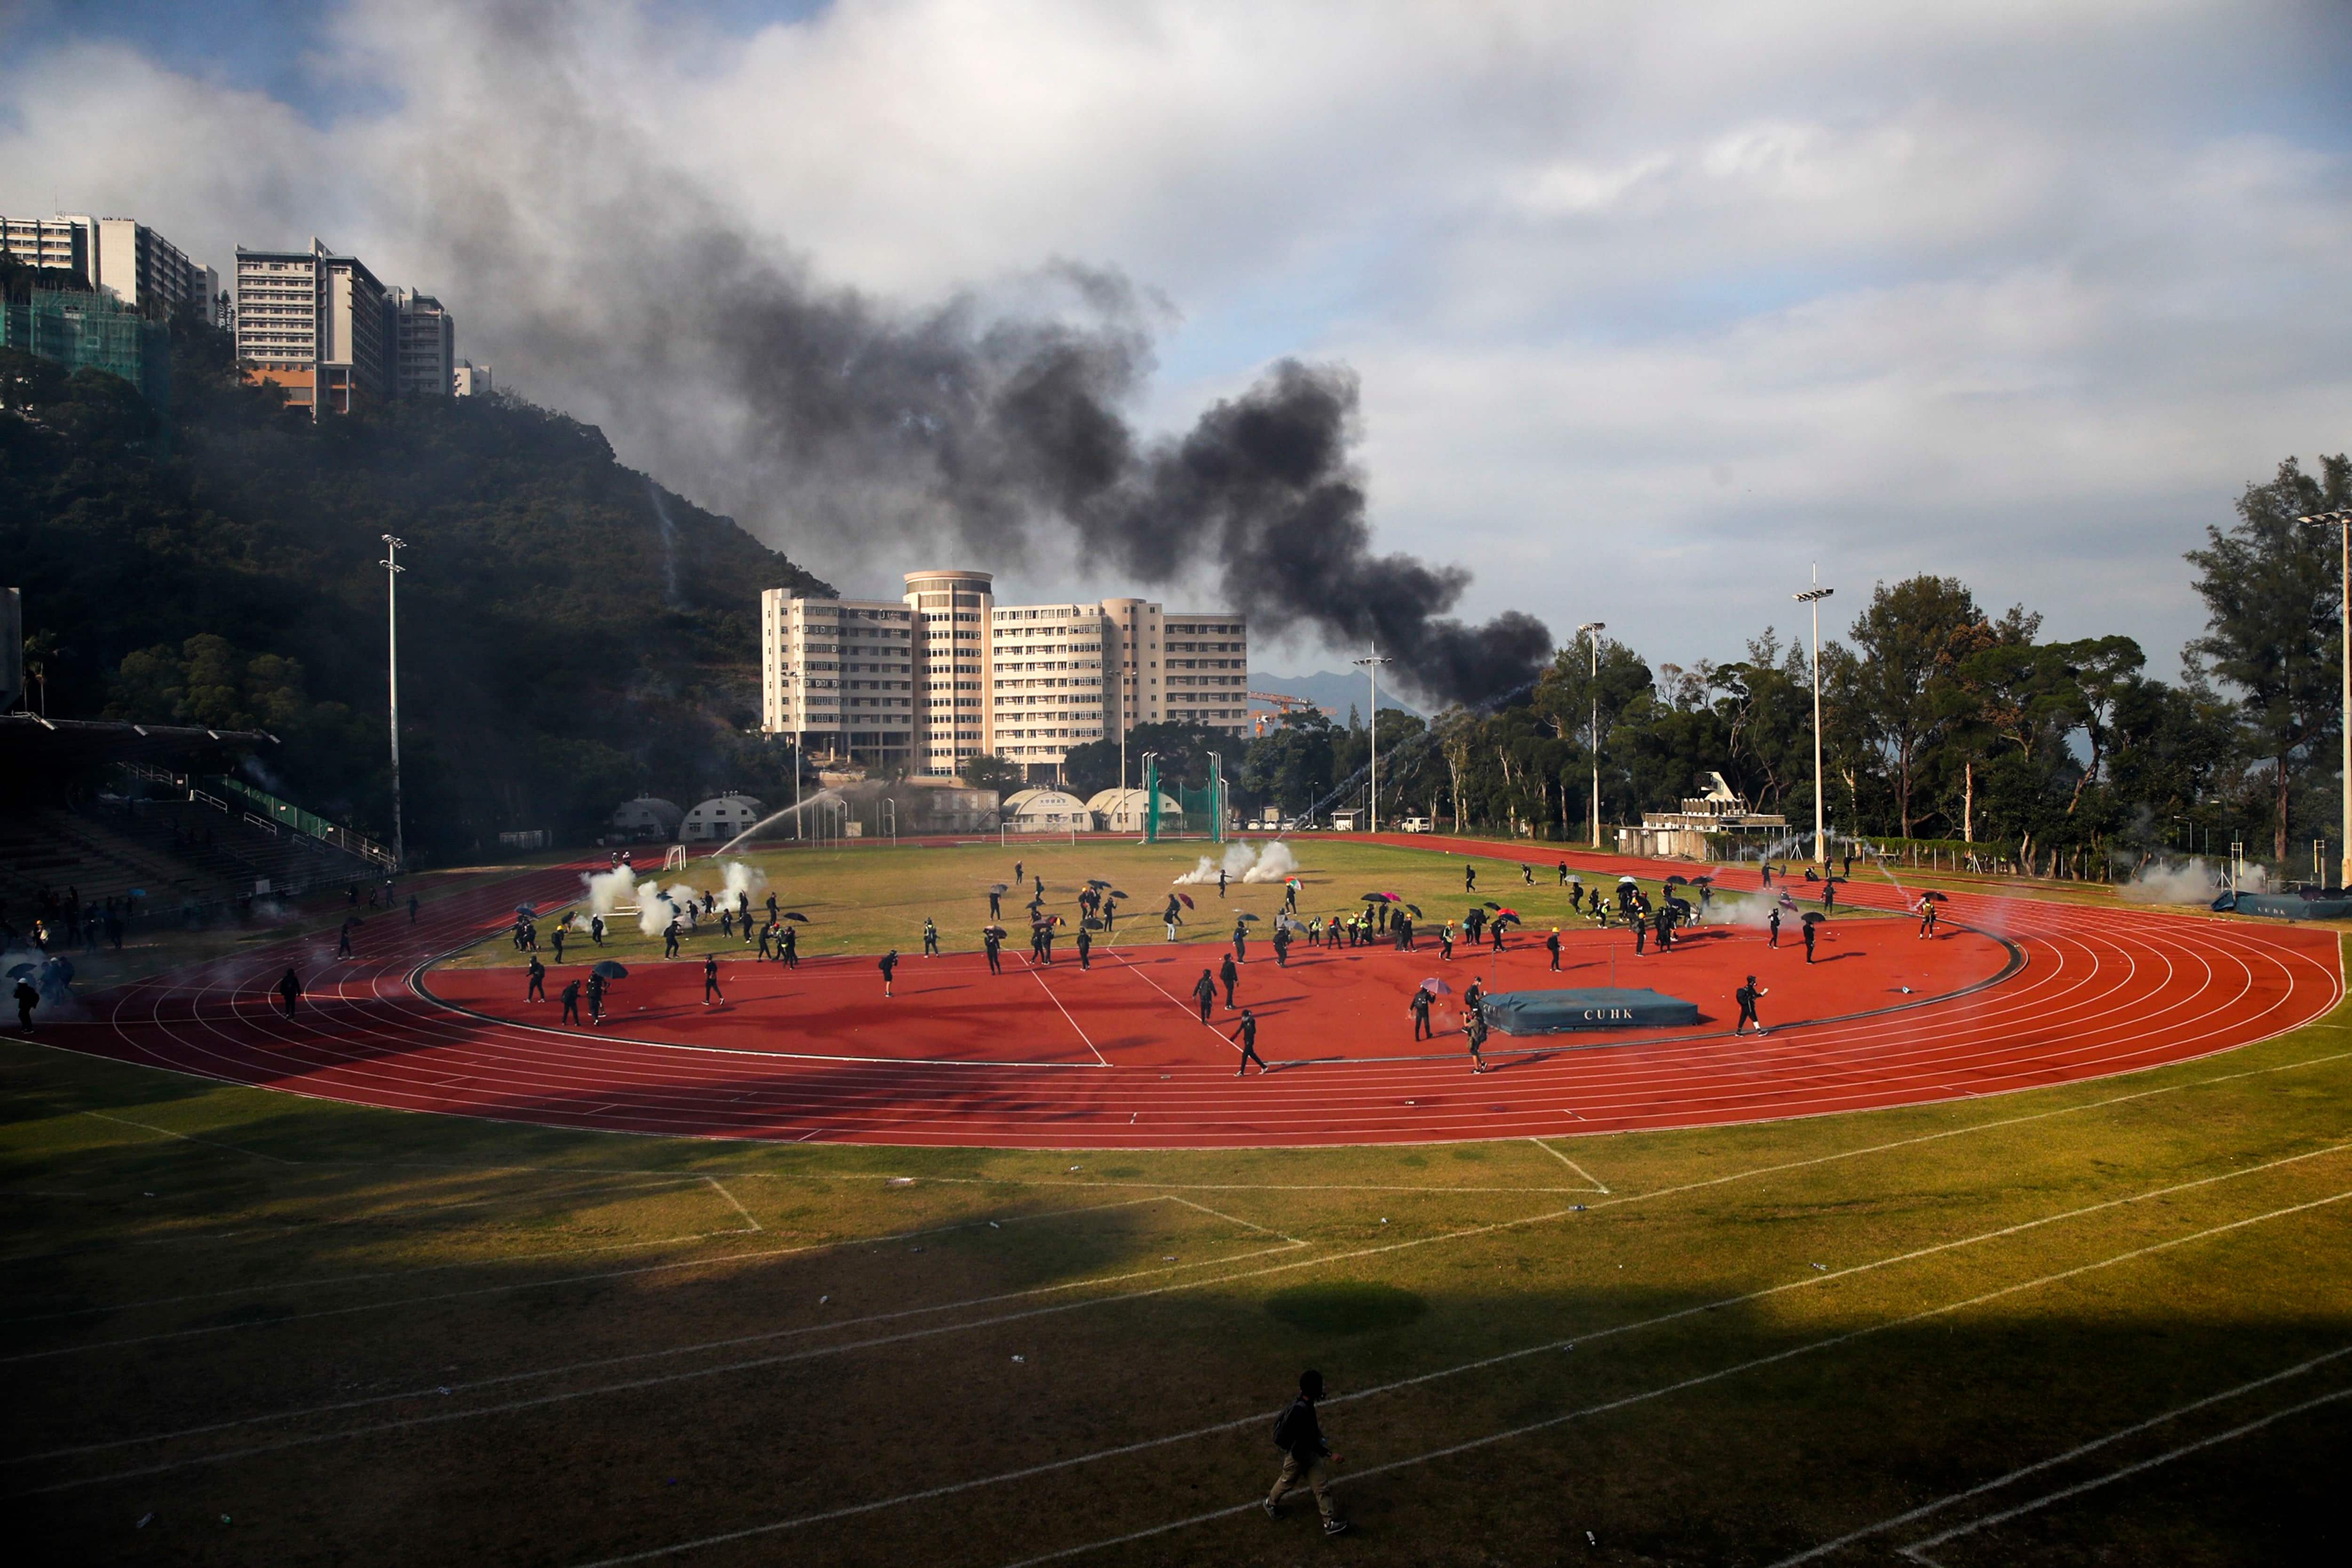 Students try to clear the tear gas canisters on a field during a face-off with police at Chinese University in Hong Kong (Photo: AP)